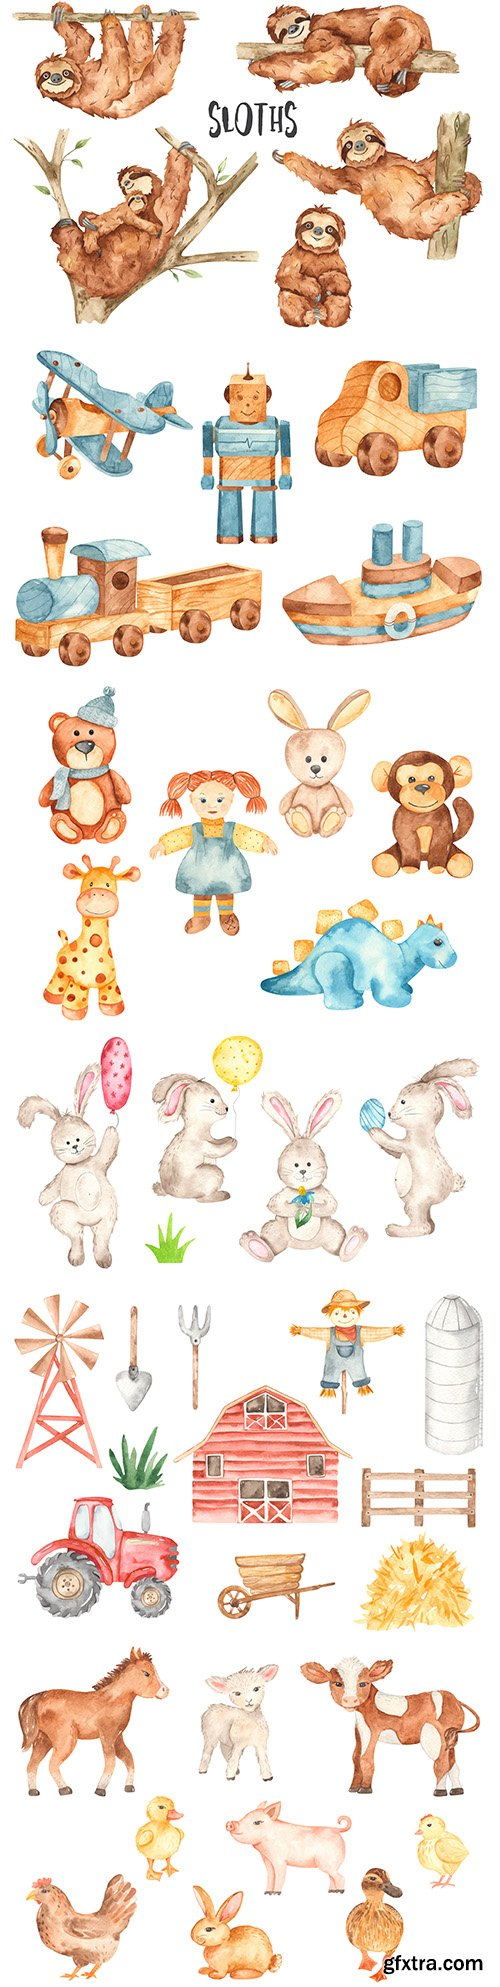 Cute animals on farm and soft watercolor-style toys